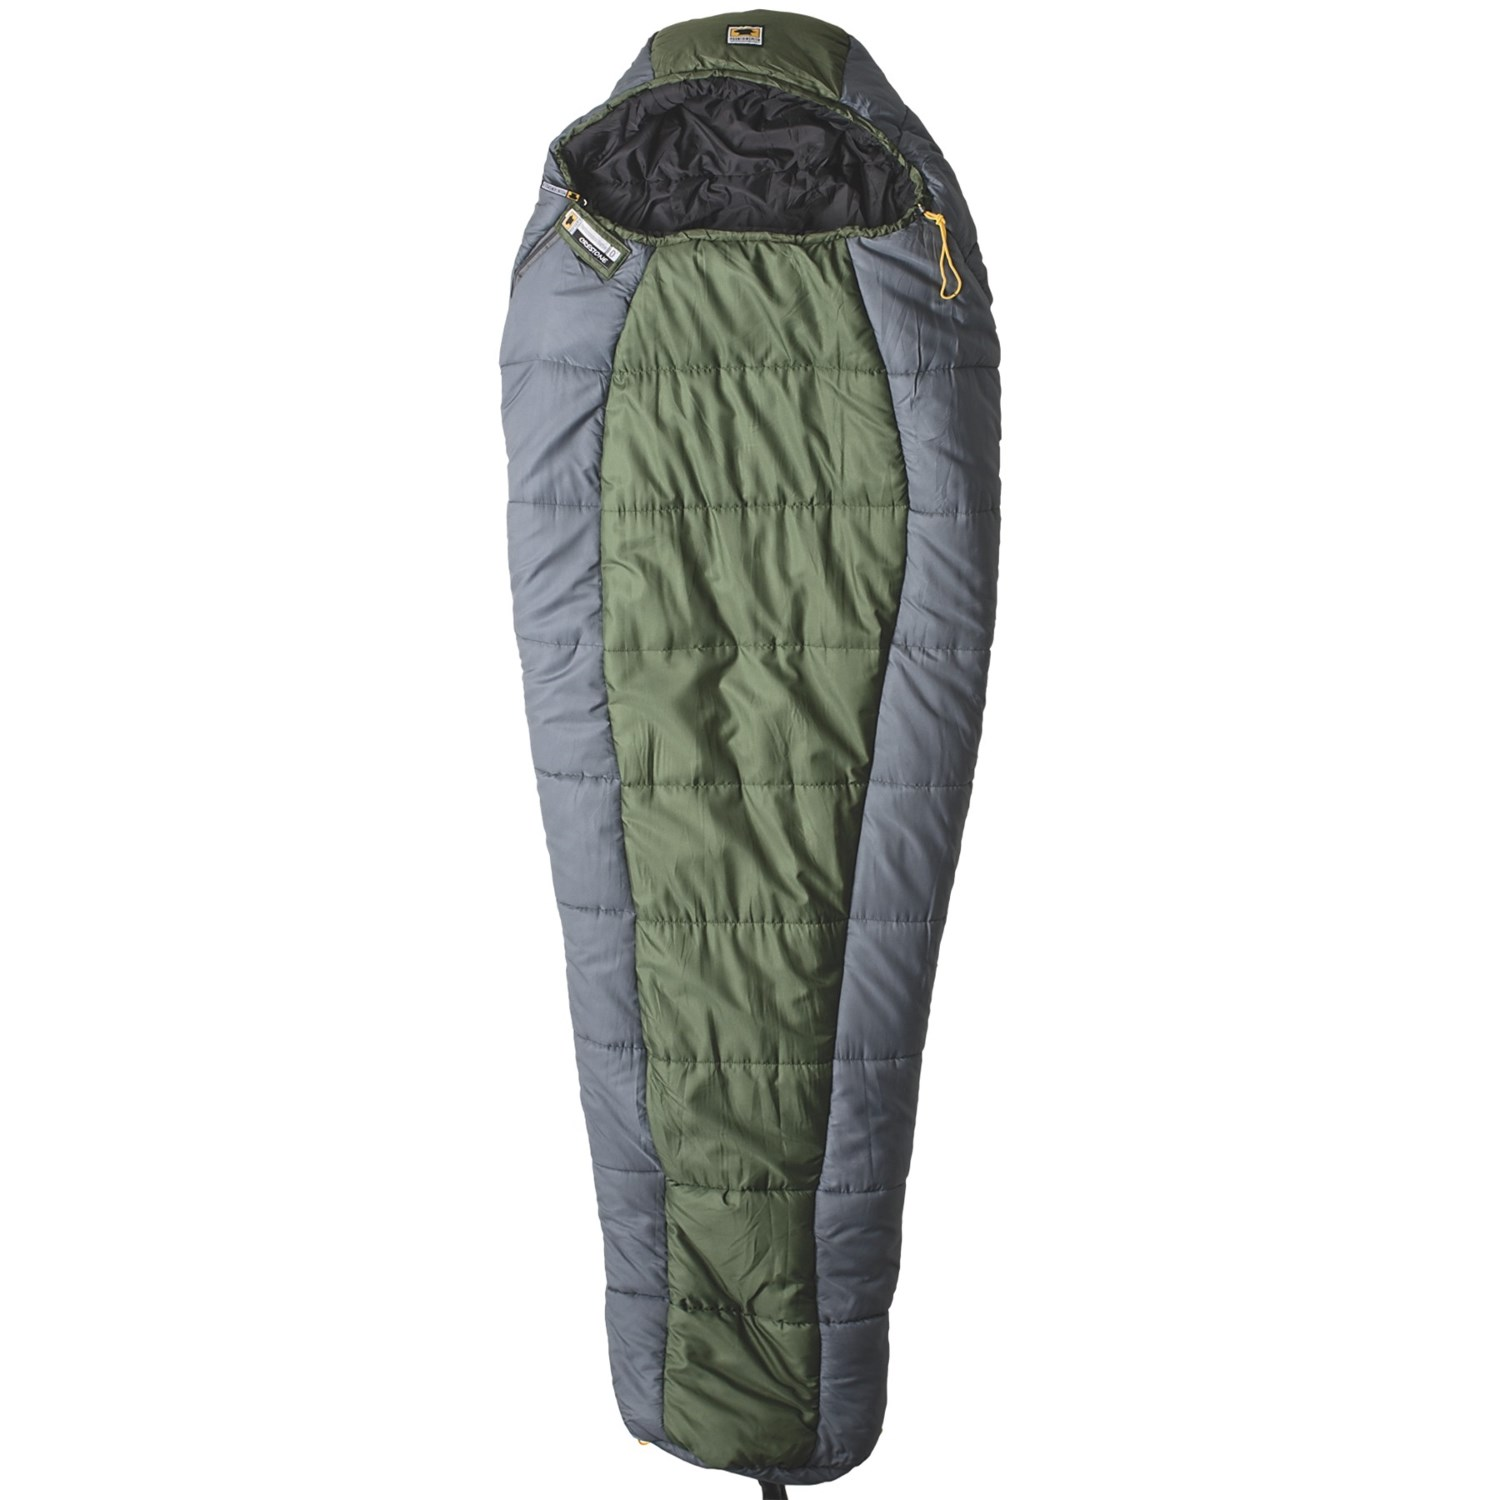 Mountainsmith 0°F Crestone Sleeping Bag